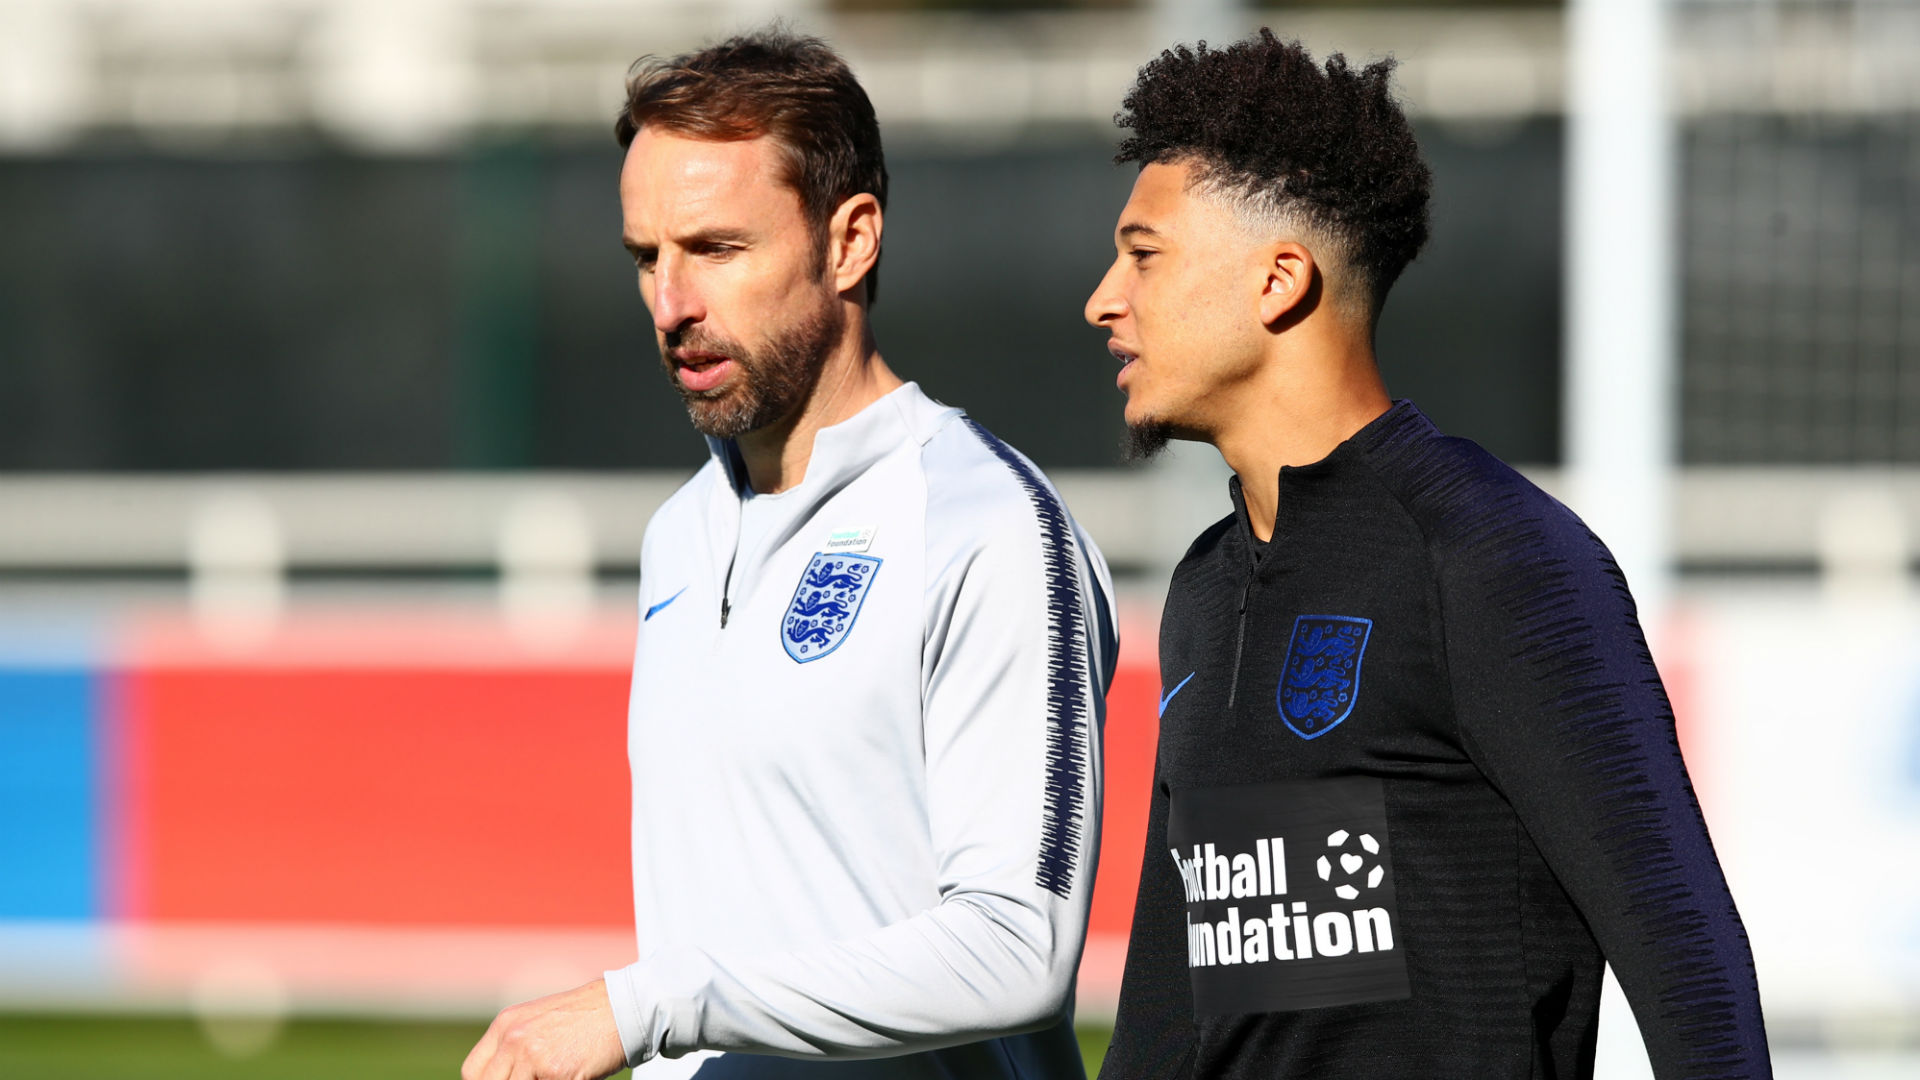 Gareth Southgate, Jadon Sancho, England, St George's Park, National Football Centre